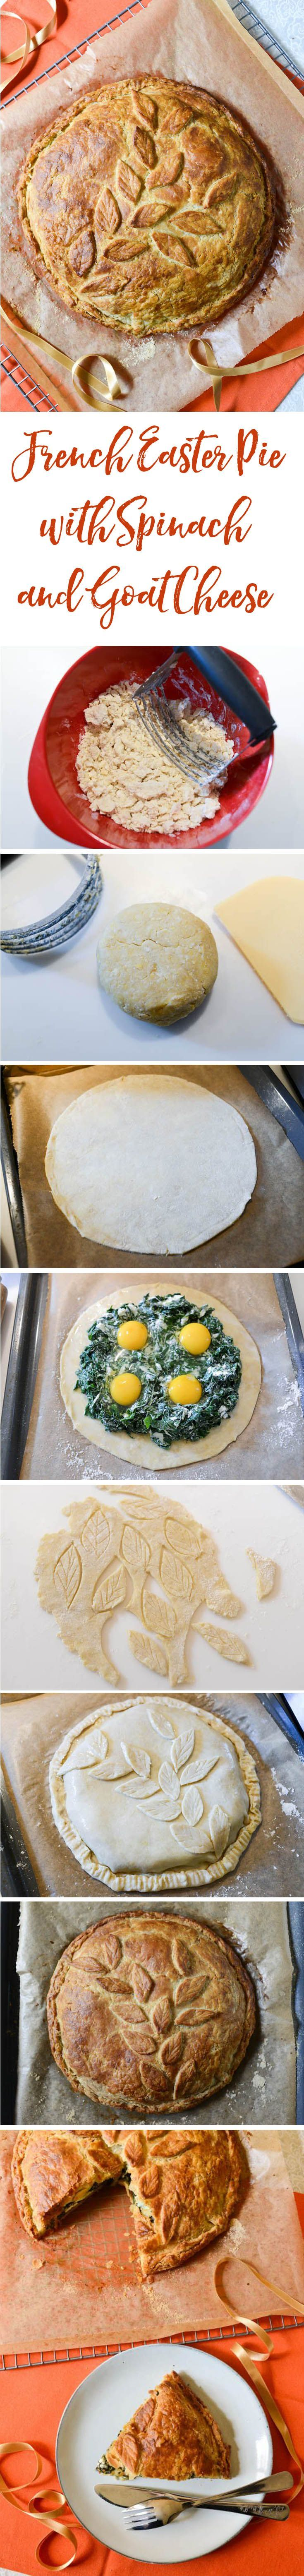 A traditional French Easter pie, vegetarian and spring-like, garnished with spinach and fresh goat cheese, with eggs nested inside. Superb presentation!